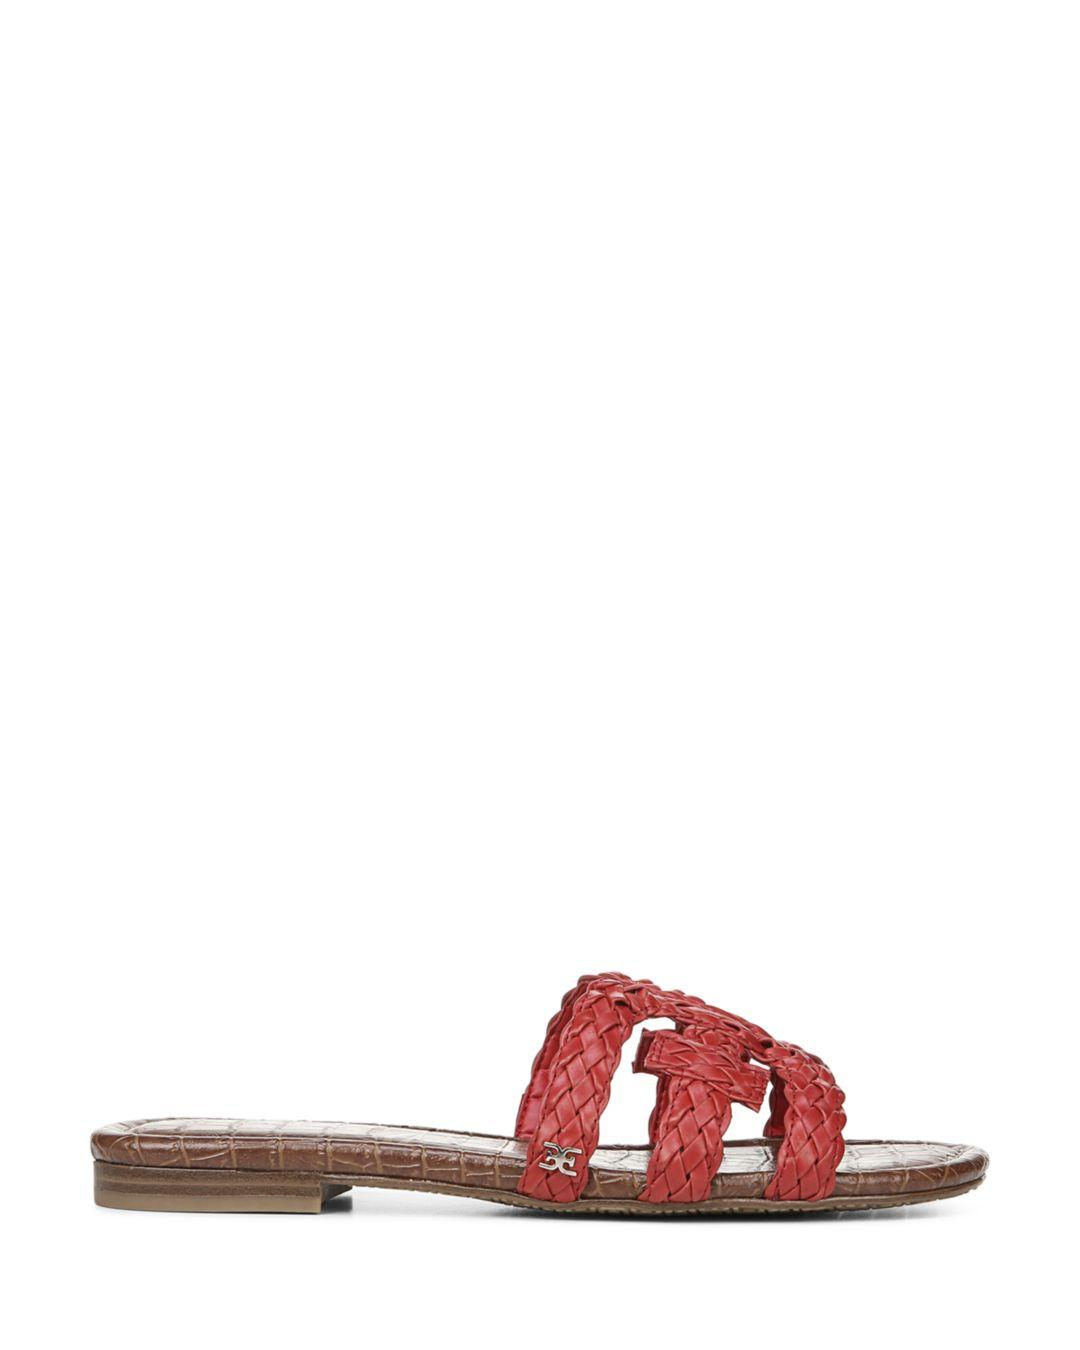 26f0d8d2d Sam Edelman Women s Beckie Woven Slide Sandals in Red - Lyst